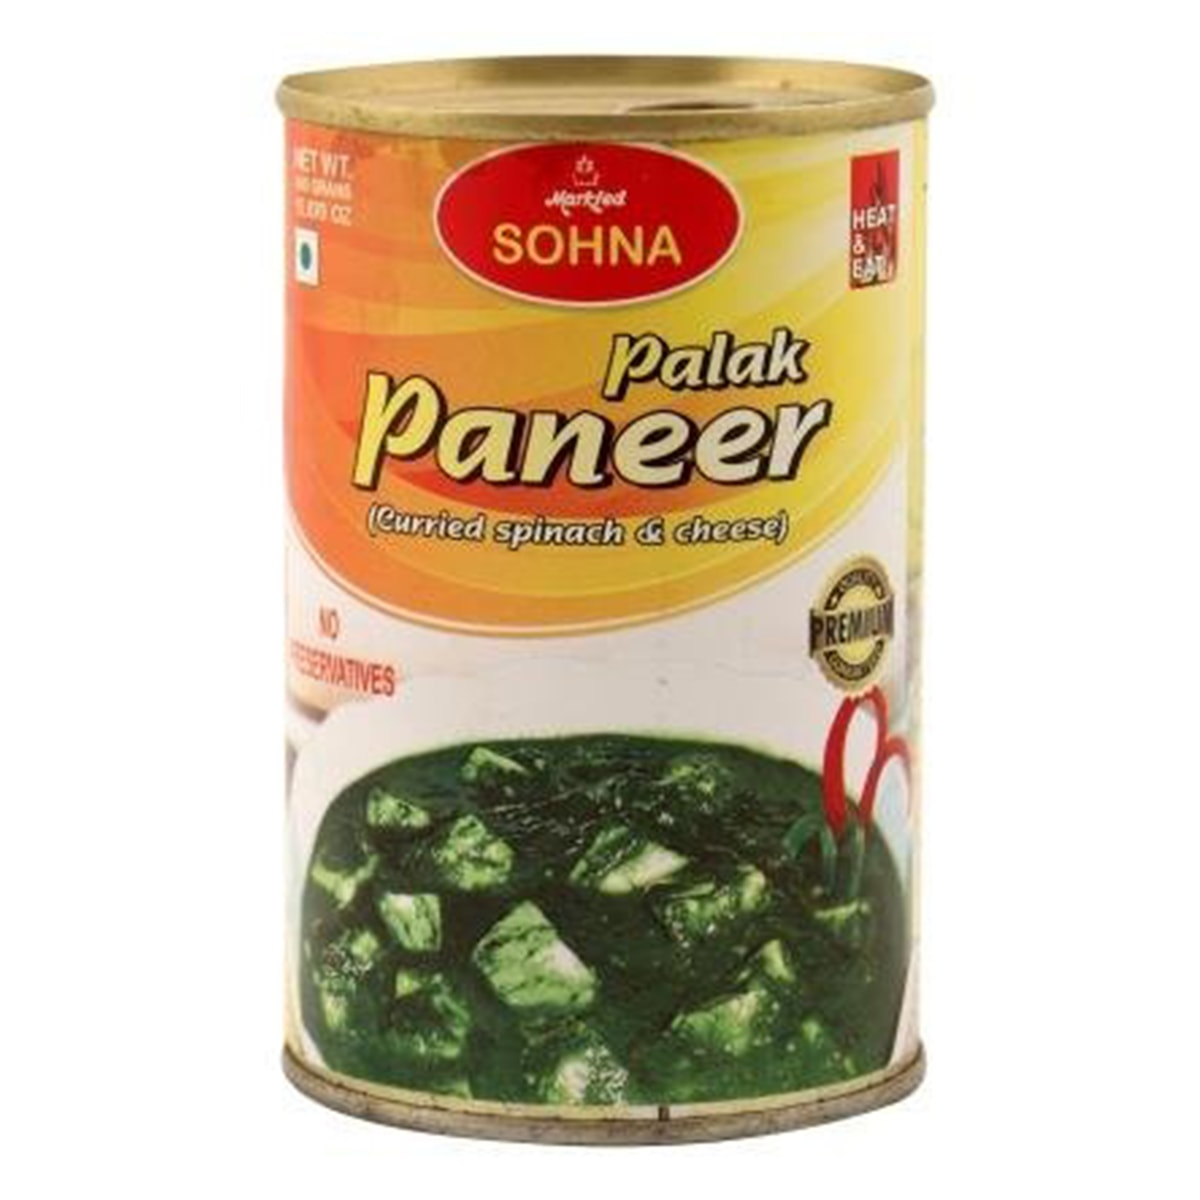 Buy Markfed Sohna Palak Paneer (Spinach and Cheese Curried) - 450 gm